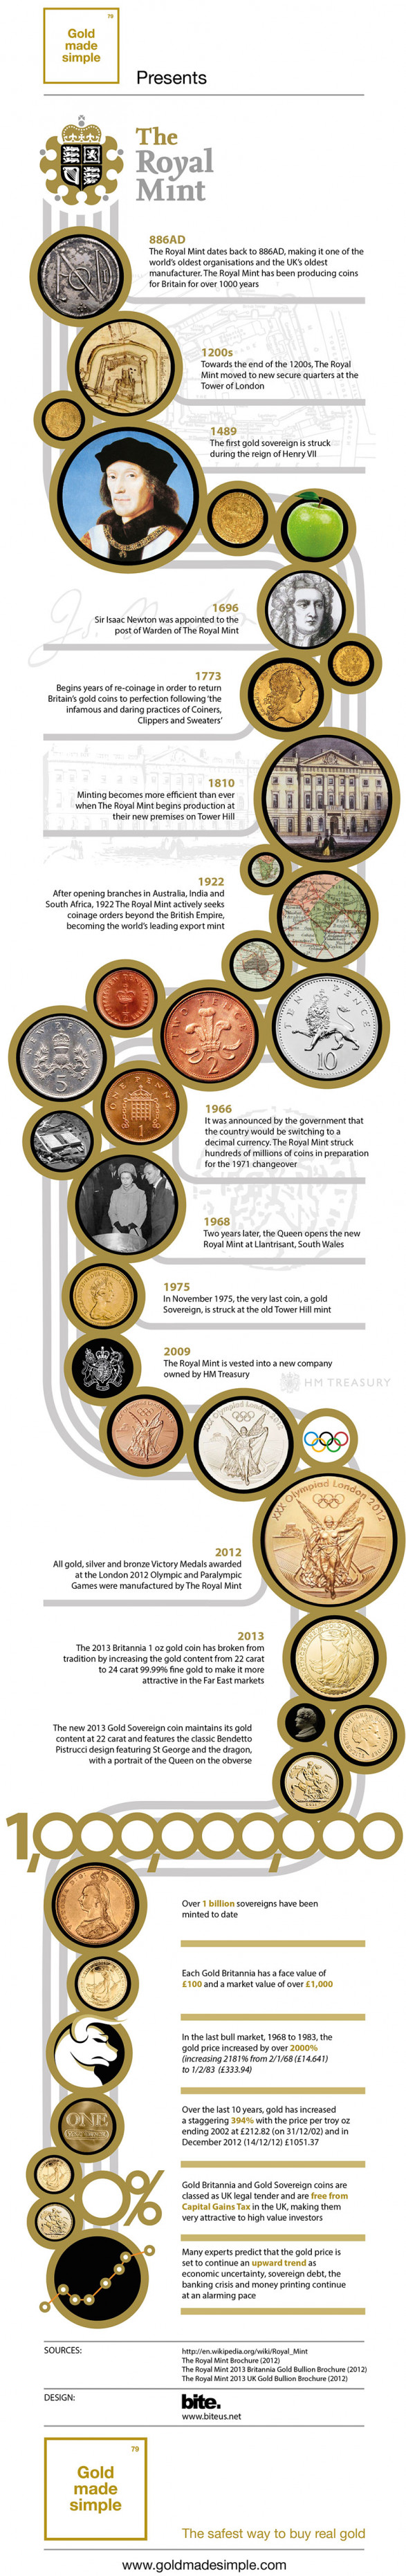 Tax Free Gold and The Royal Mint: A History